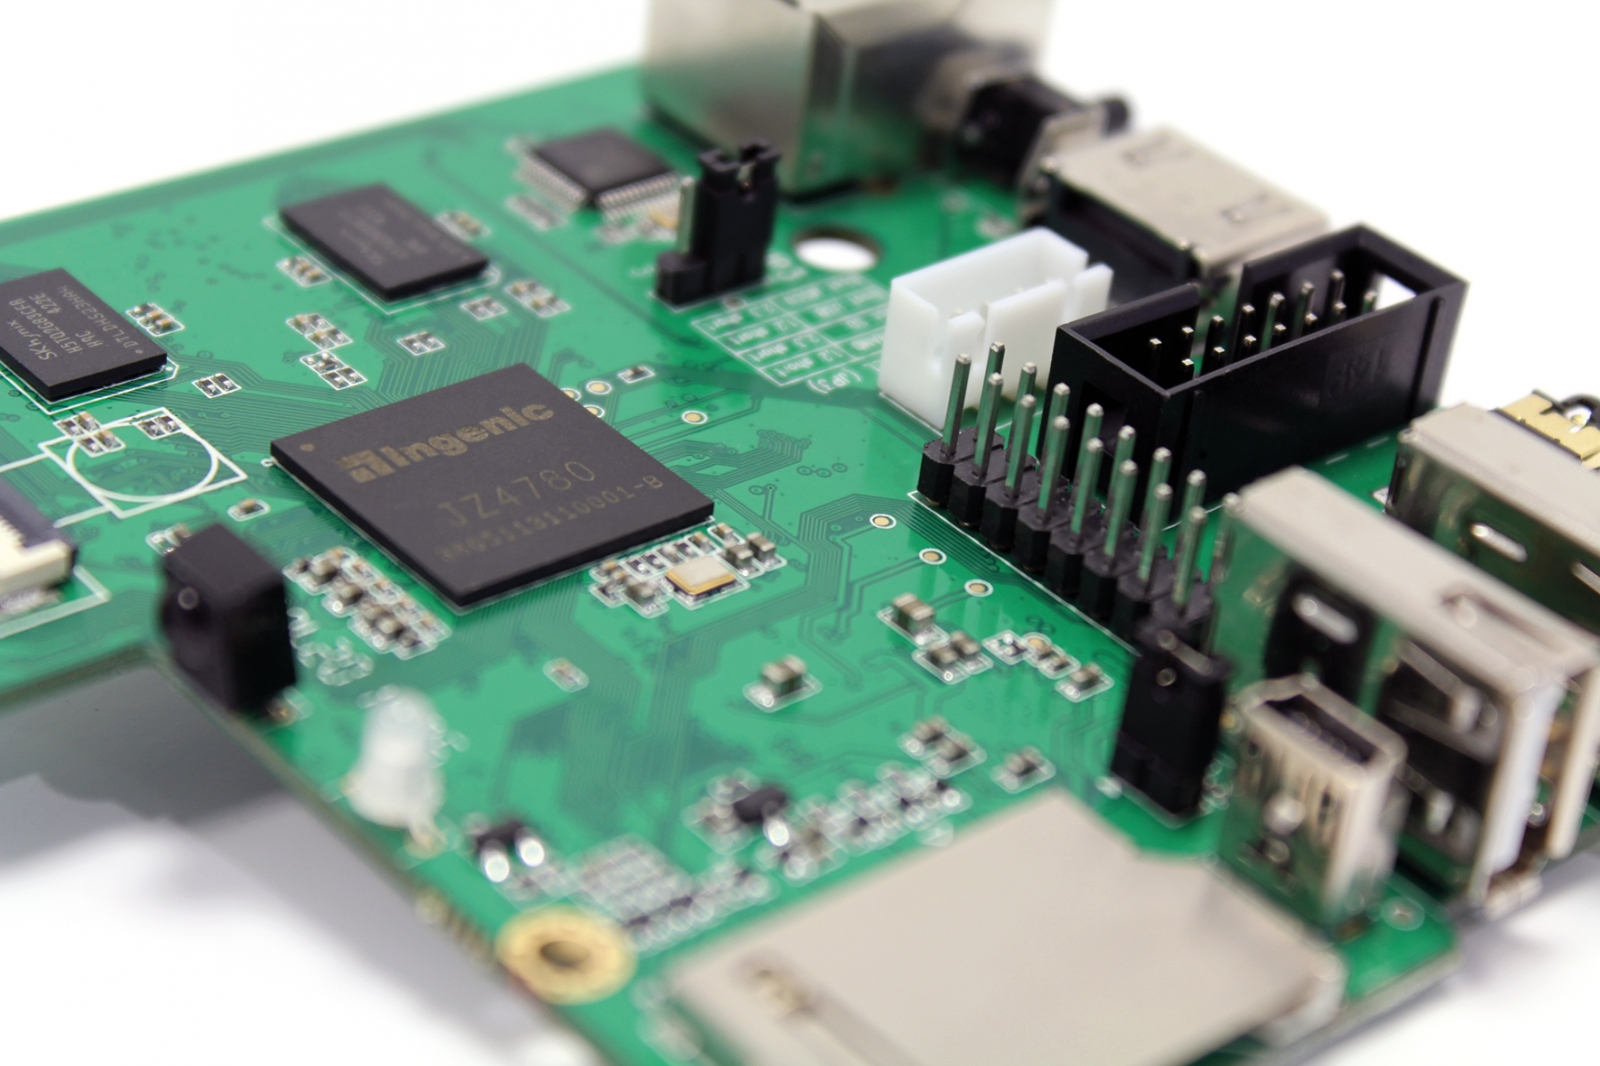 Creator CI20 is Raspberry Pi on Steroids